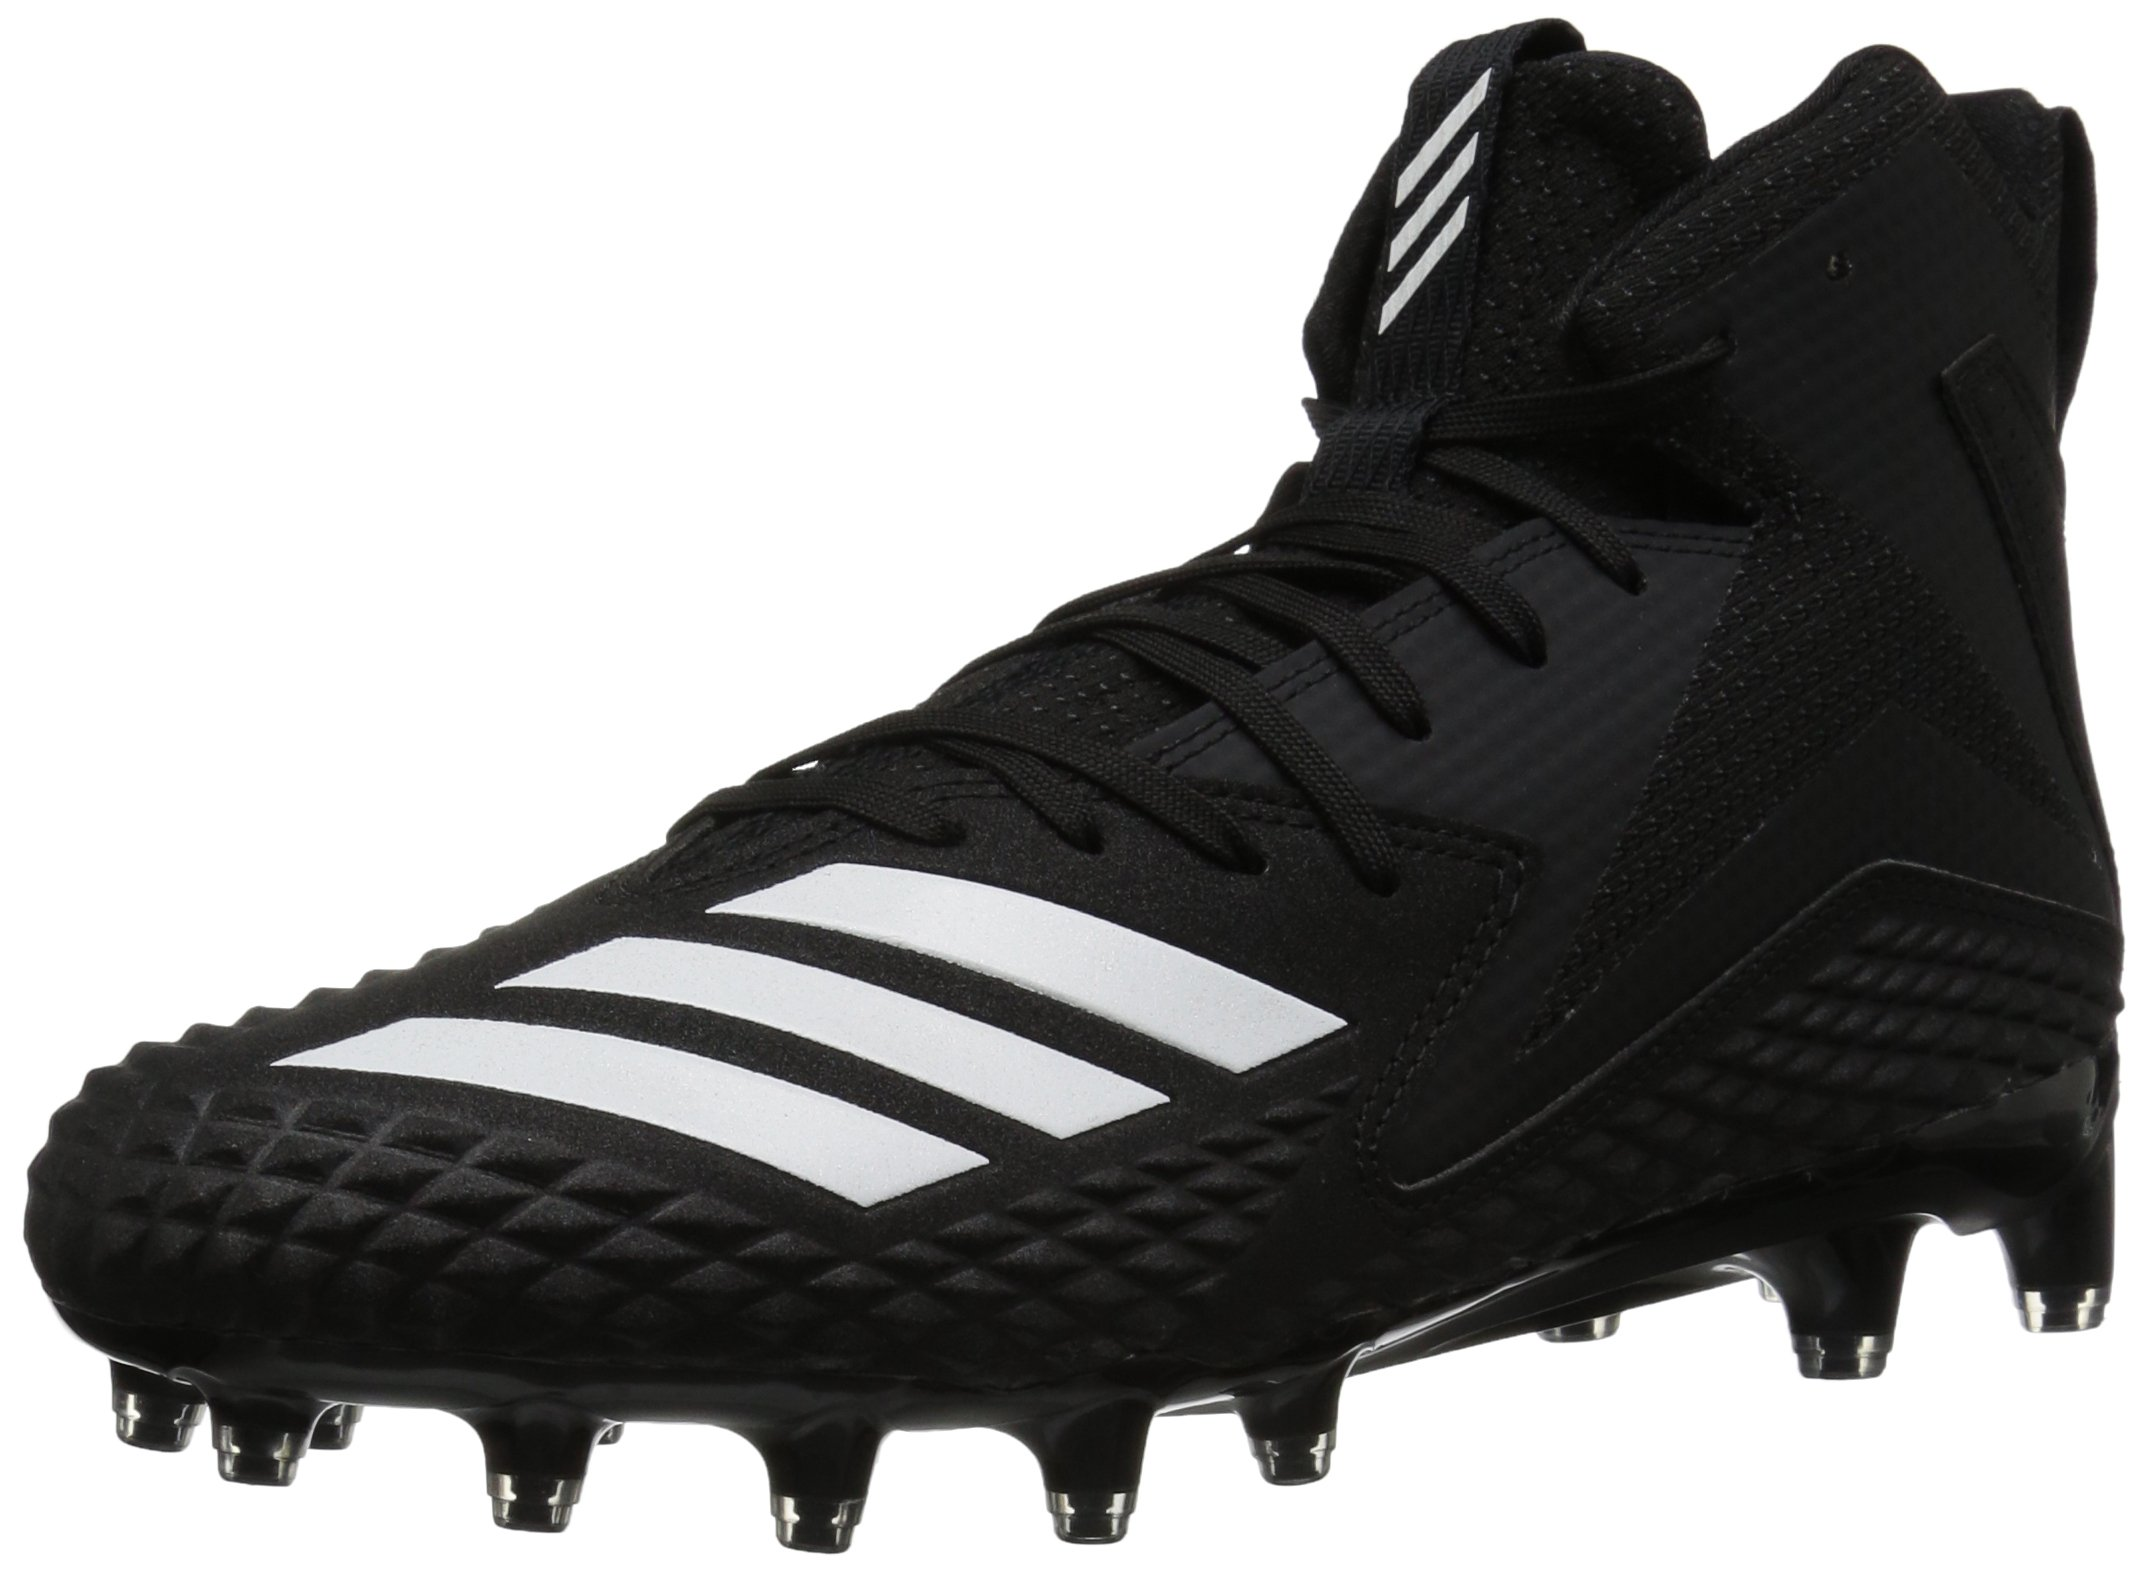 adidas Men's Freak x Carbon Mid Football Shoe, White/Black, 7 M US